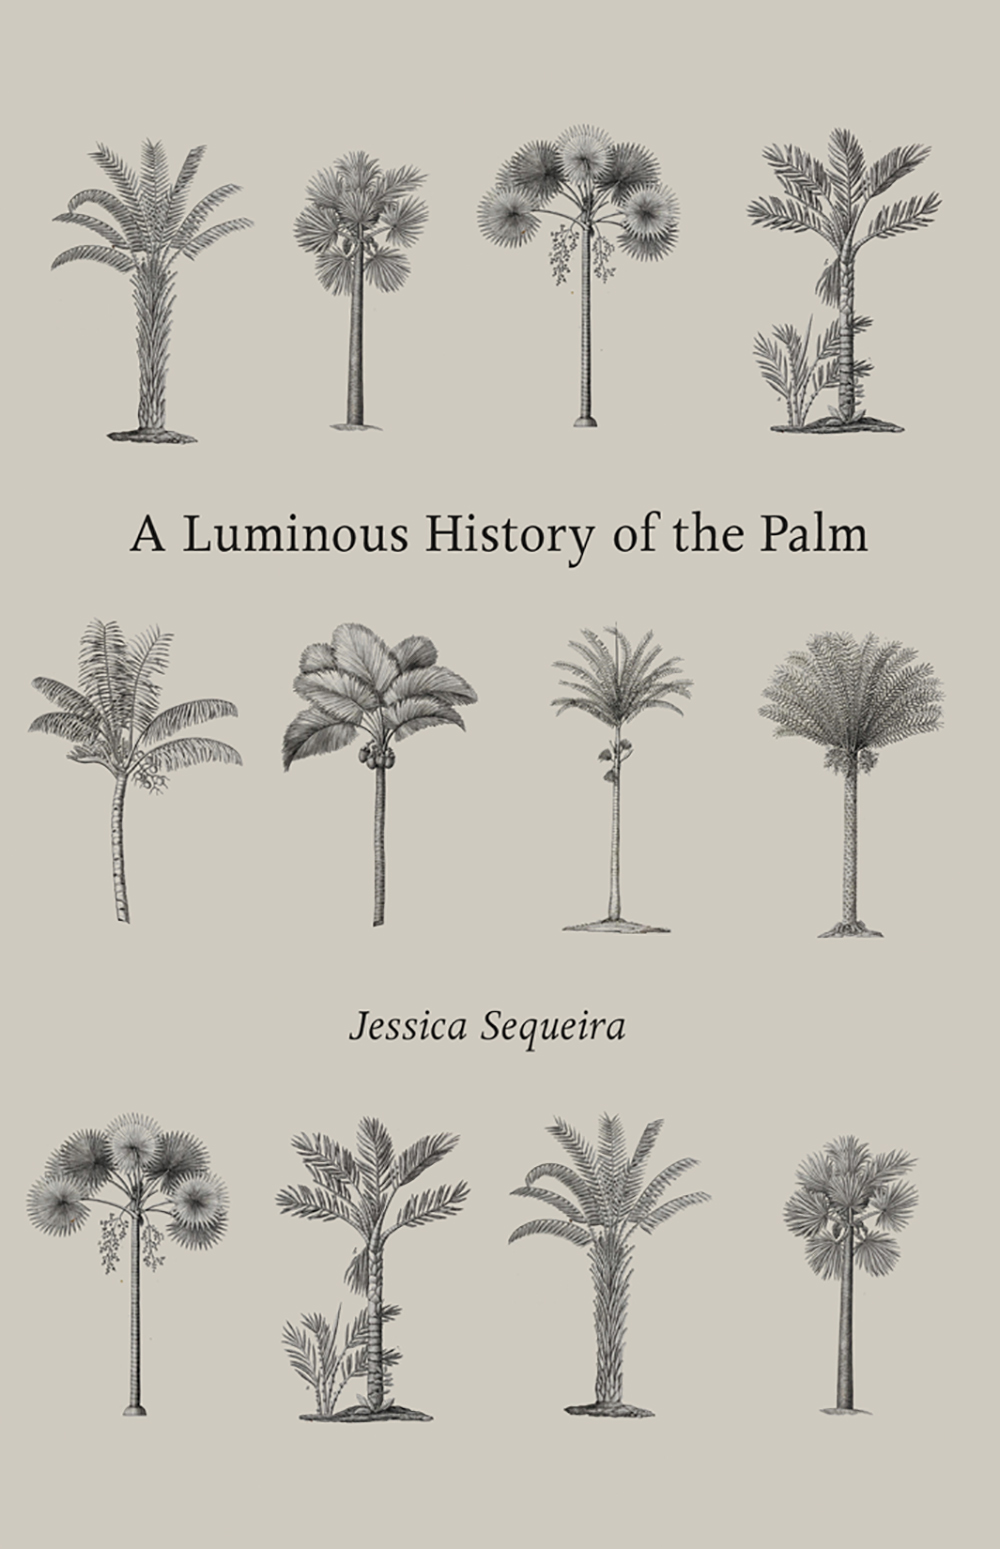 A Luminous History of the Palm